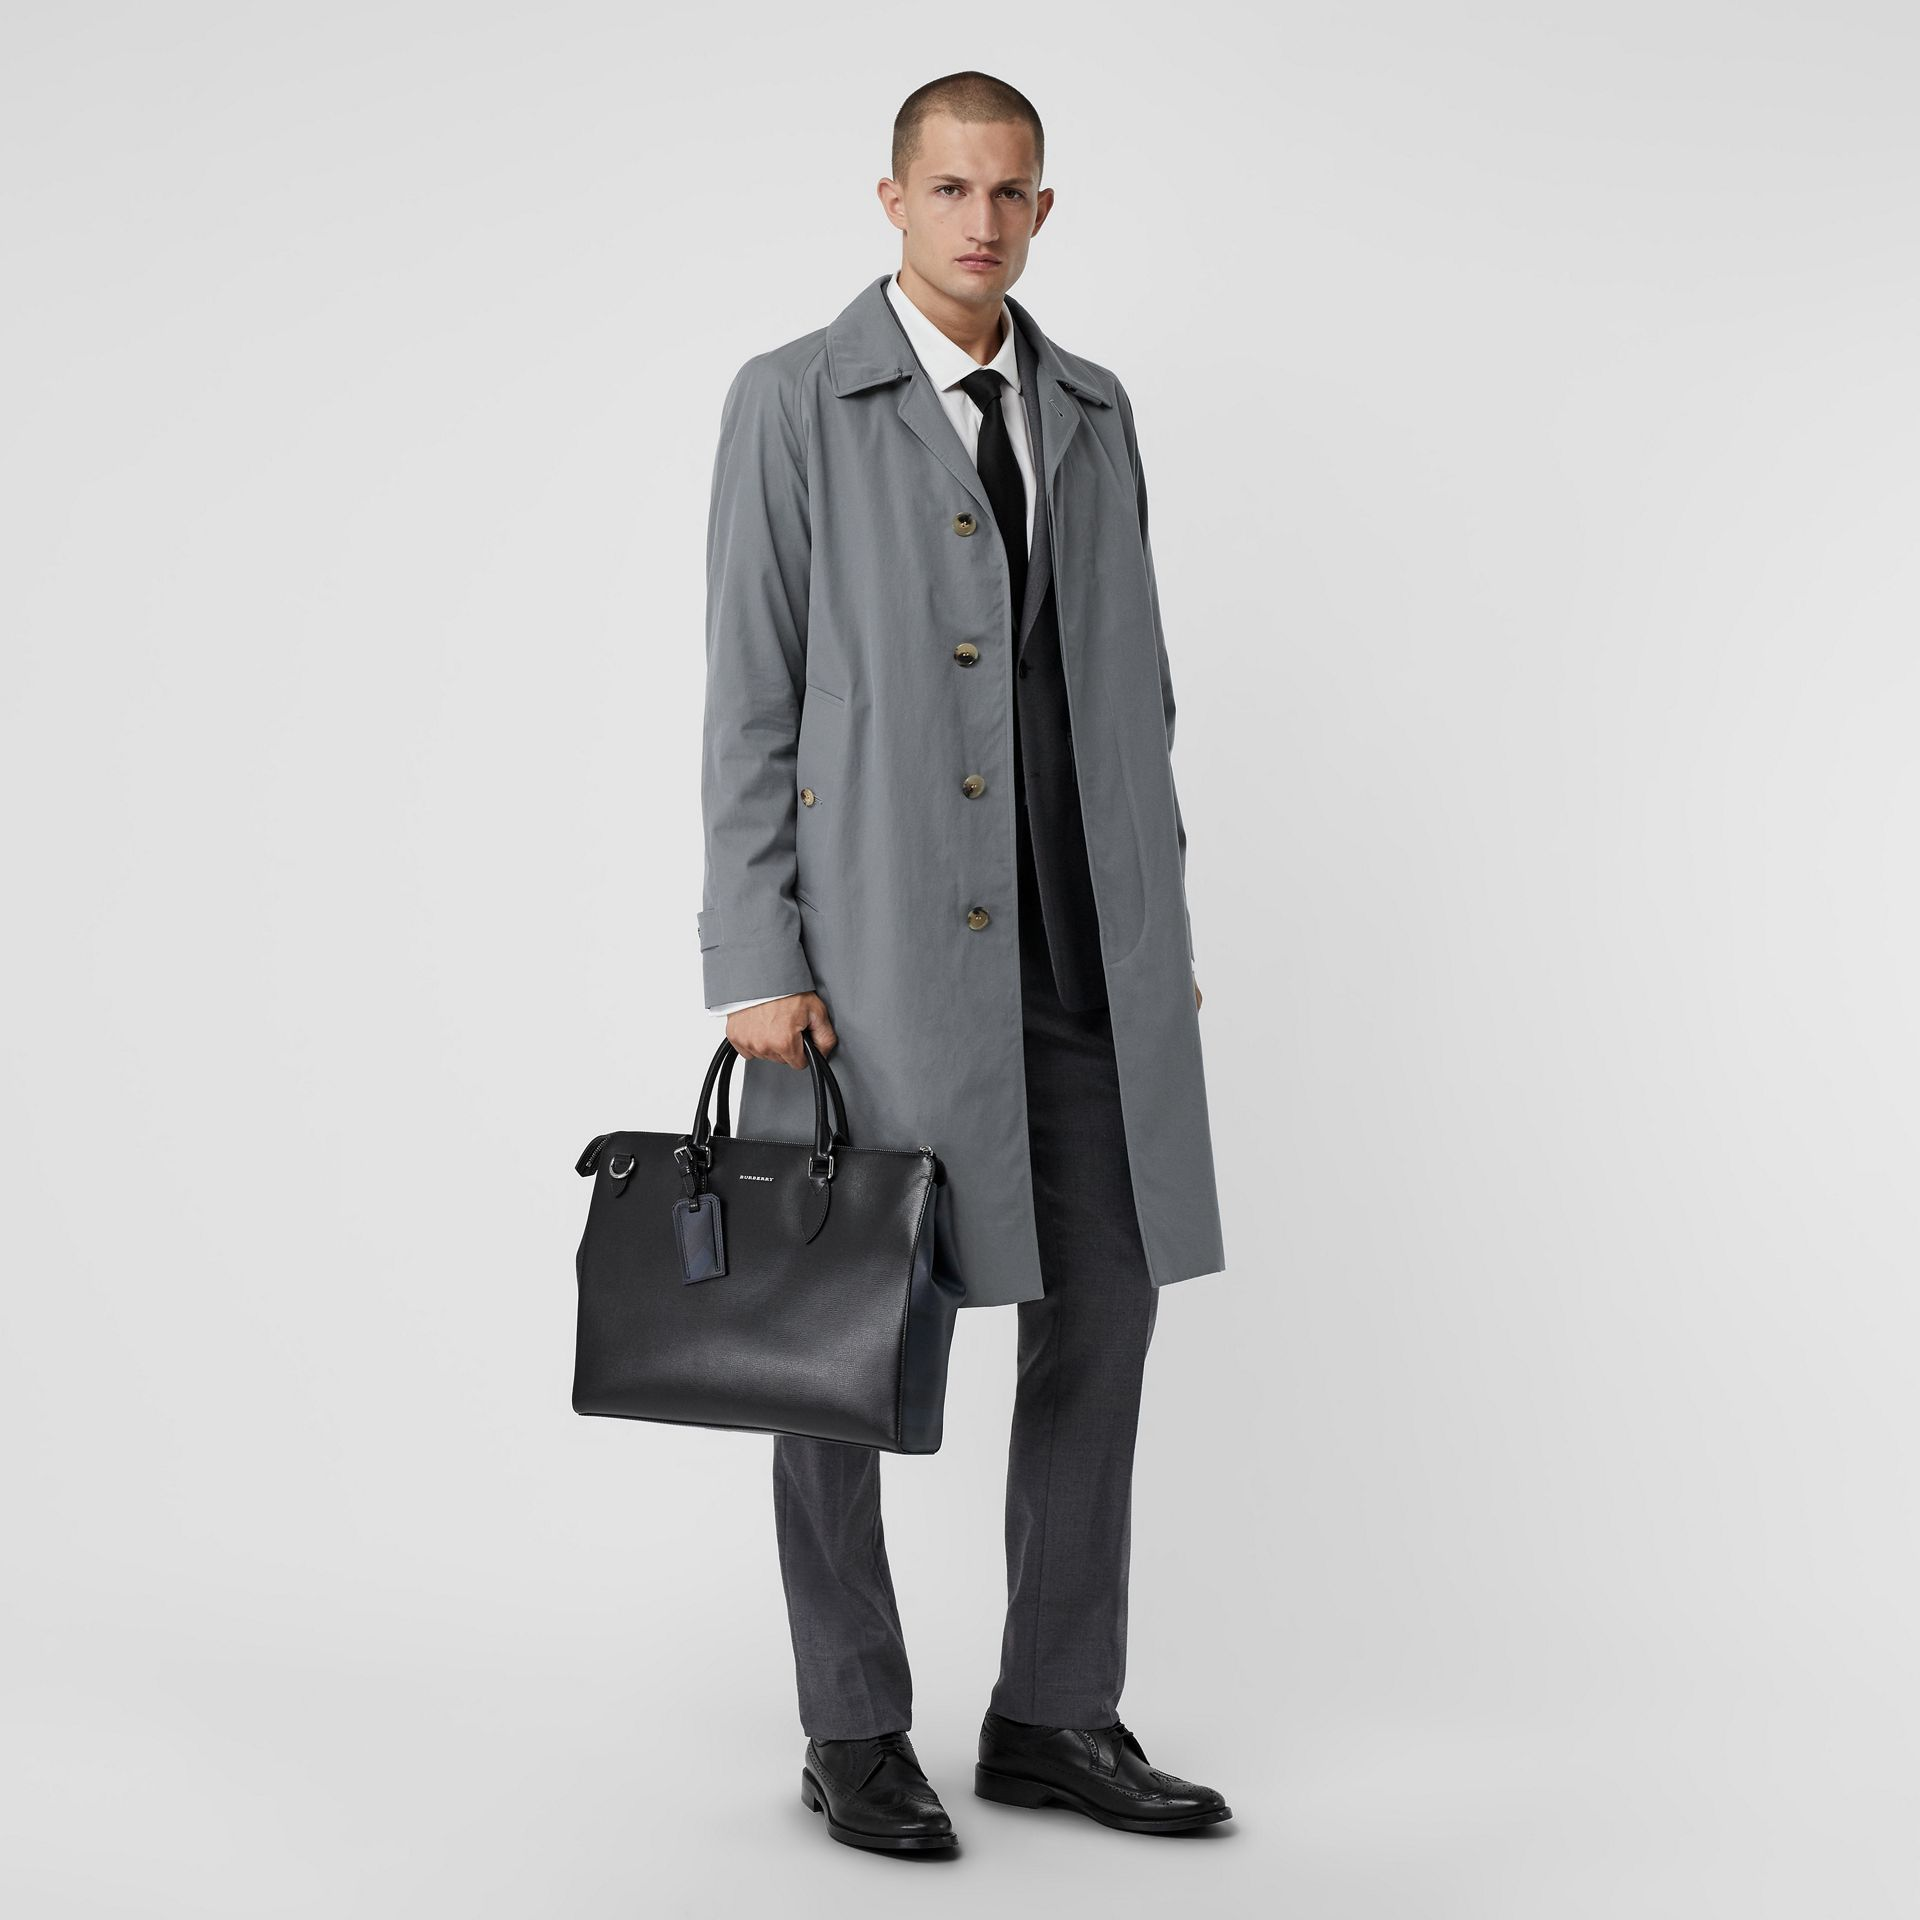 Large London Leather Briefcase in Black - Men | Burberry Canada - gallery image 2